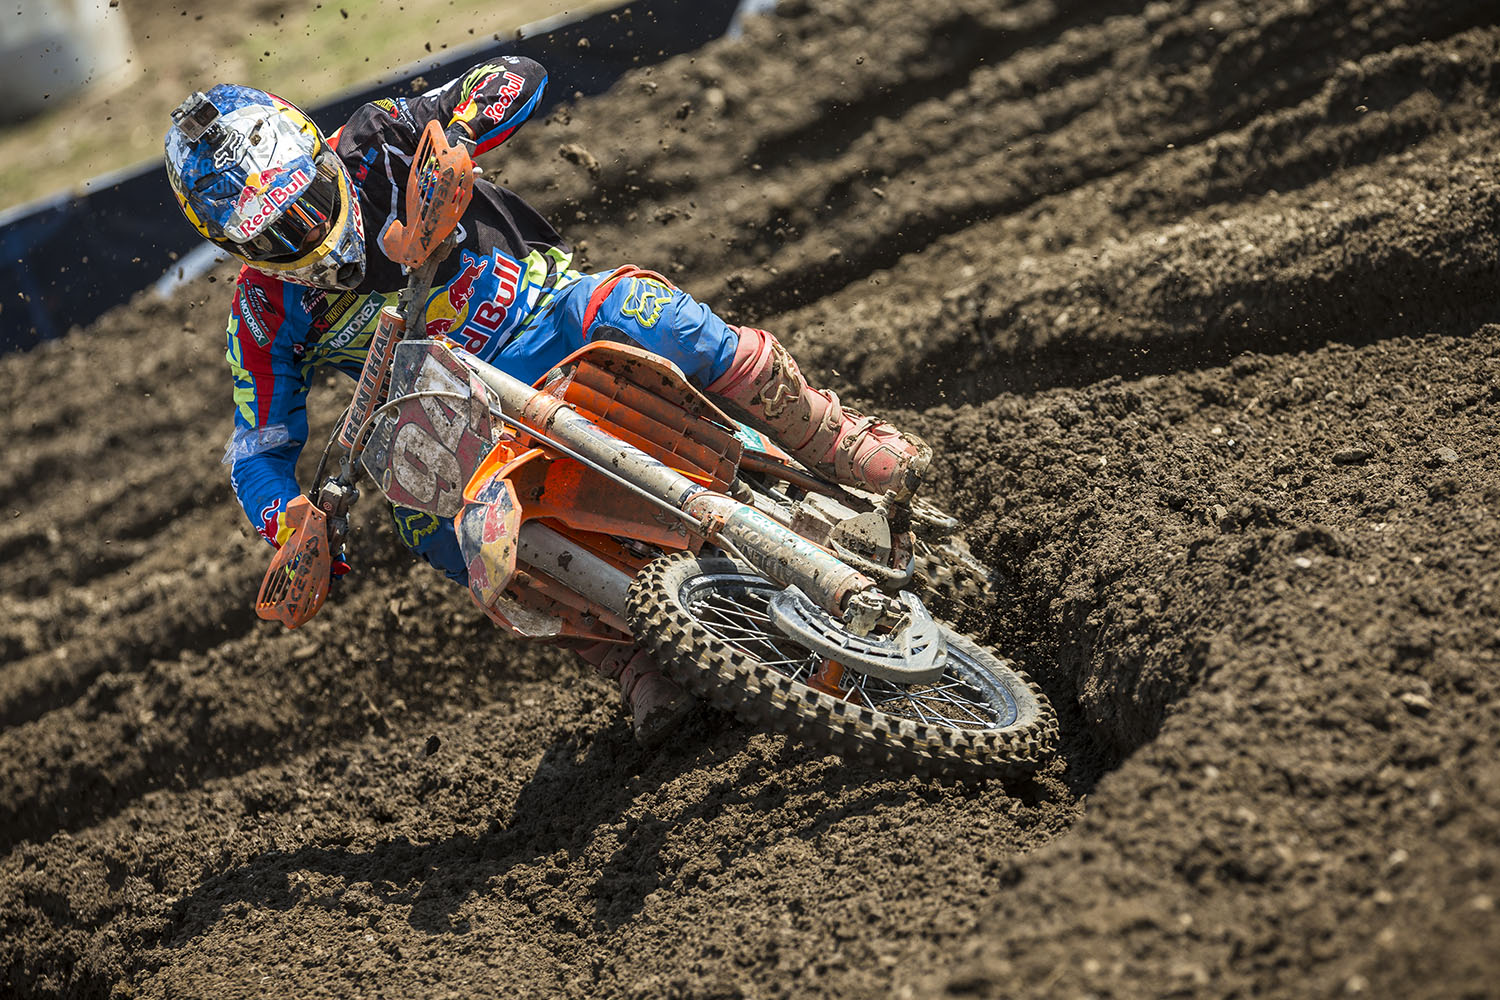 Ken Roczen competes in the AMA Pro Motocross Championships at Unadilla Valley Sports Center in New Berlin, New York on August 9th, 2014.